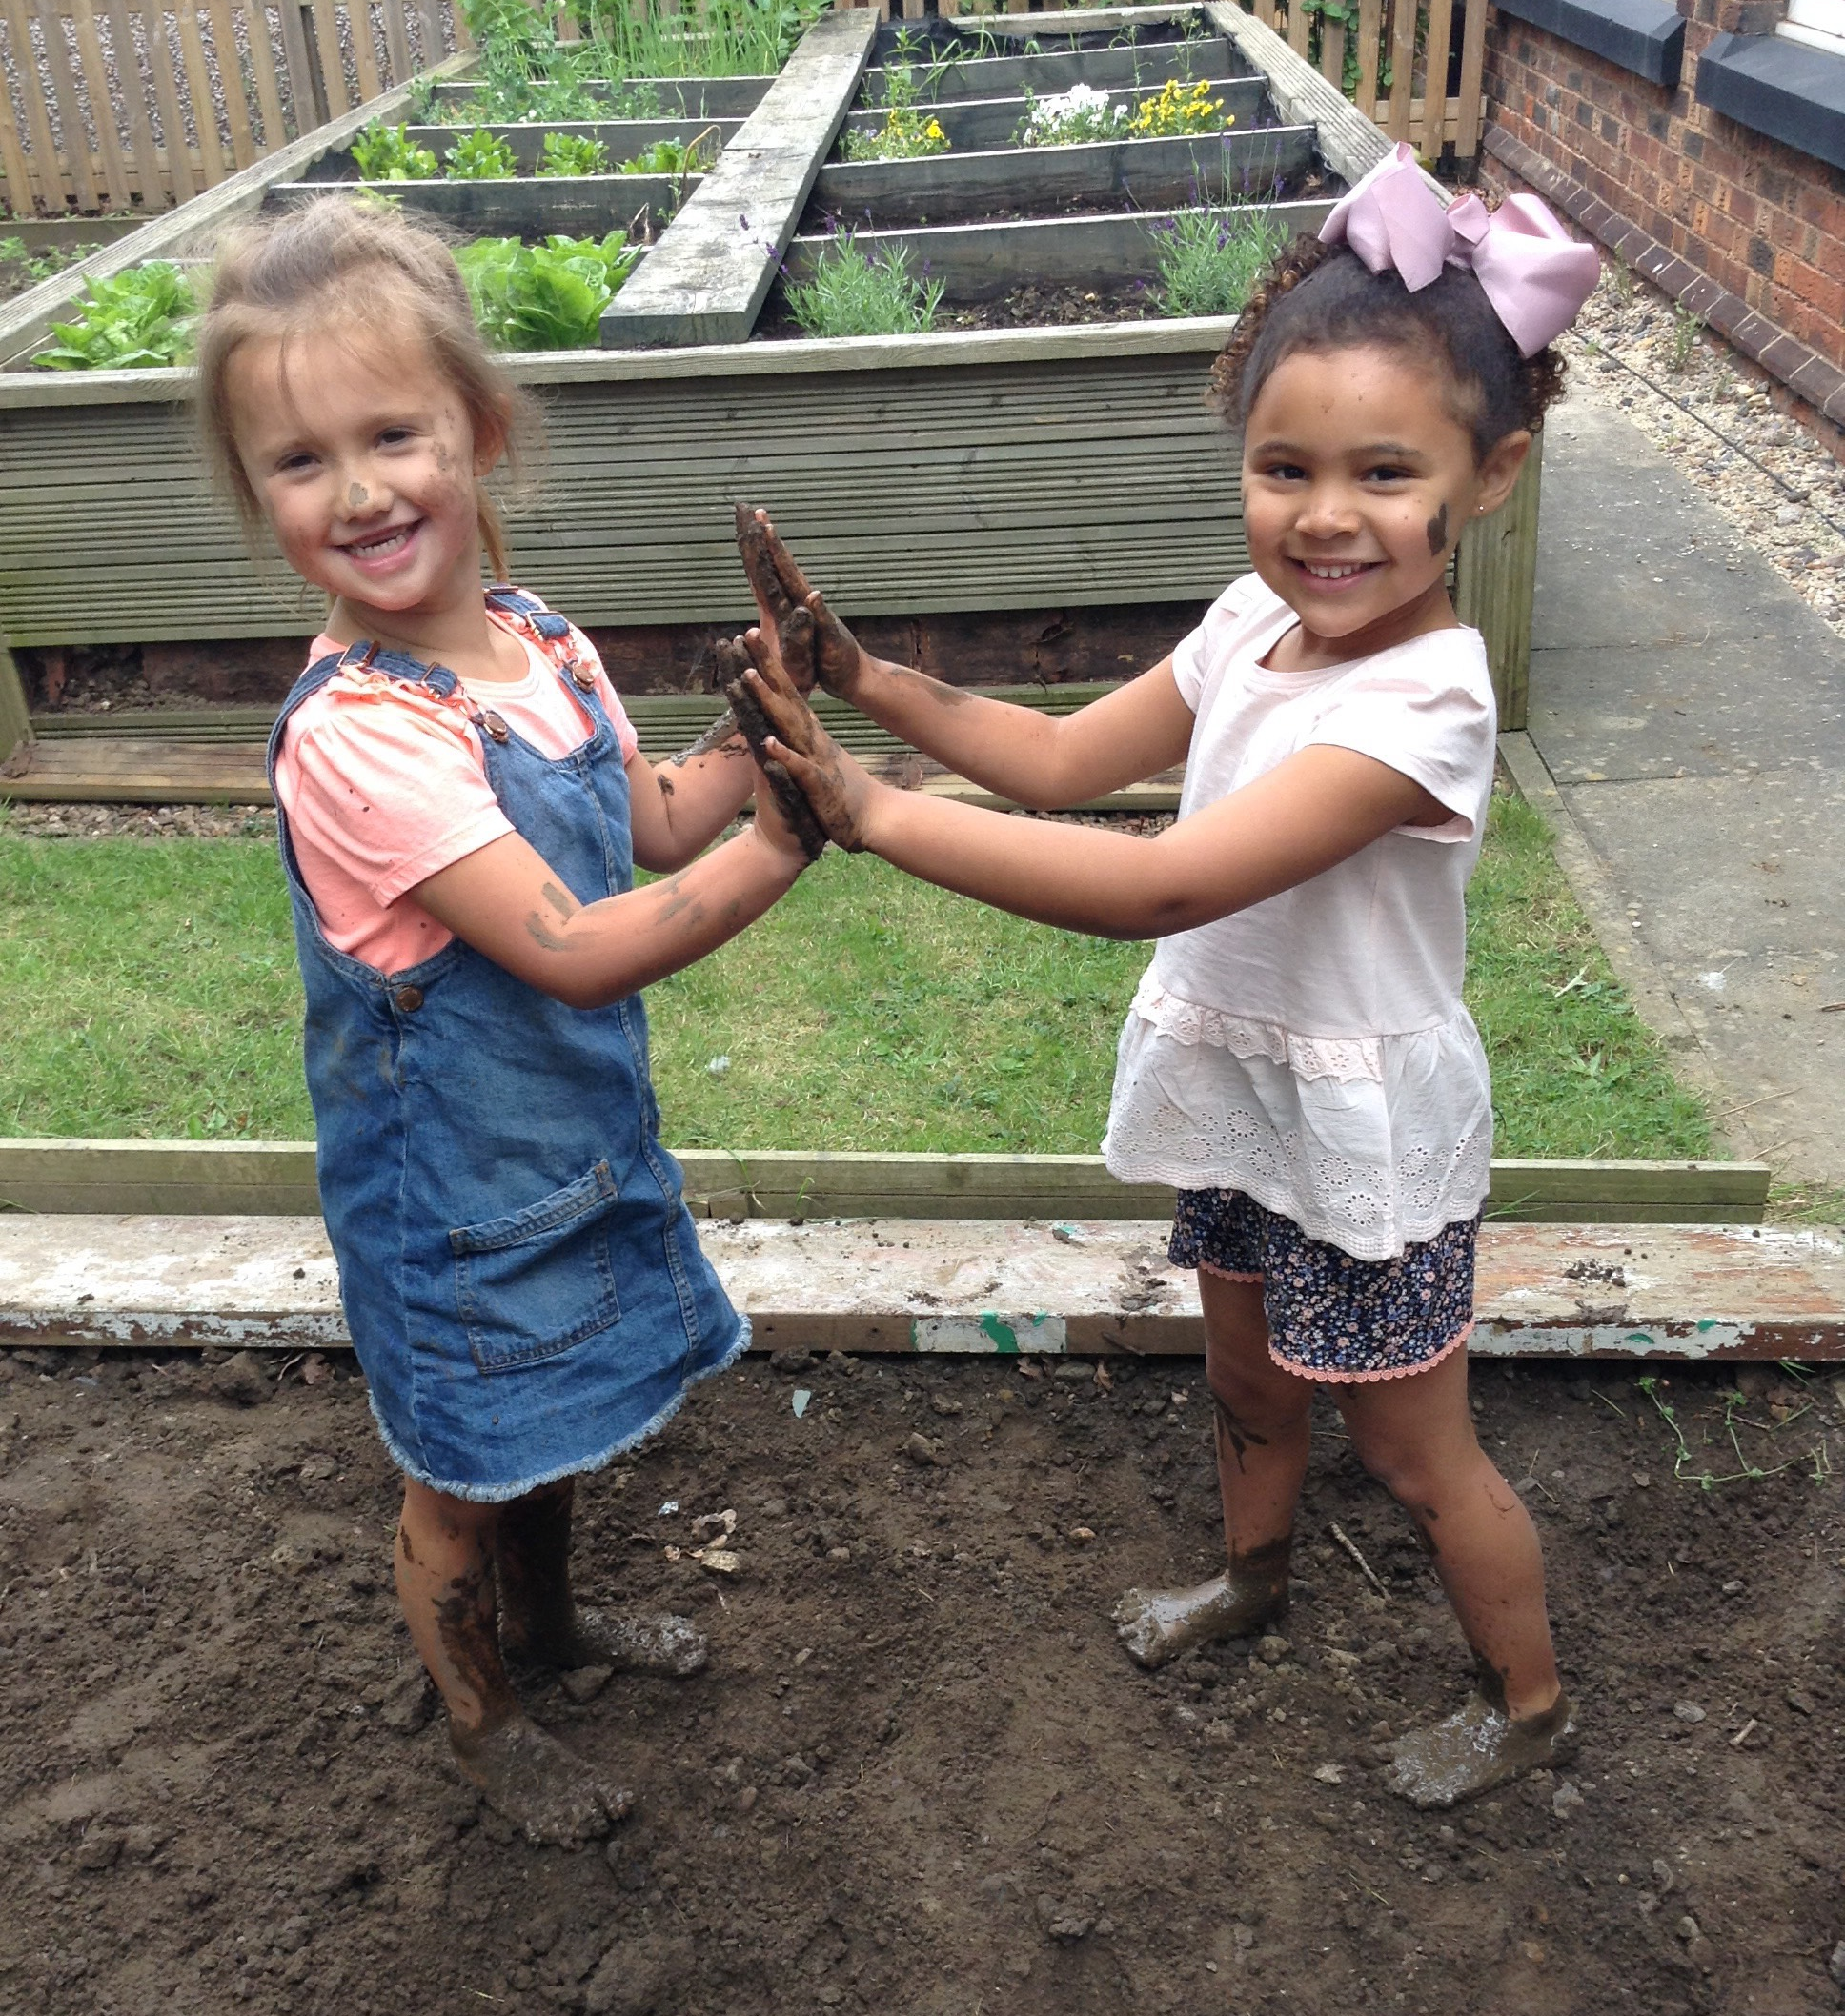 2 girls, one black one white, with muddy hands, feet and faces, standing facing each other clapping hands, and looking at the camera smiling